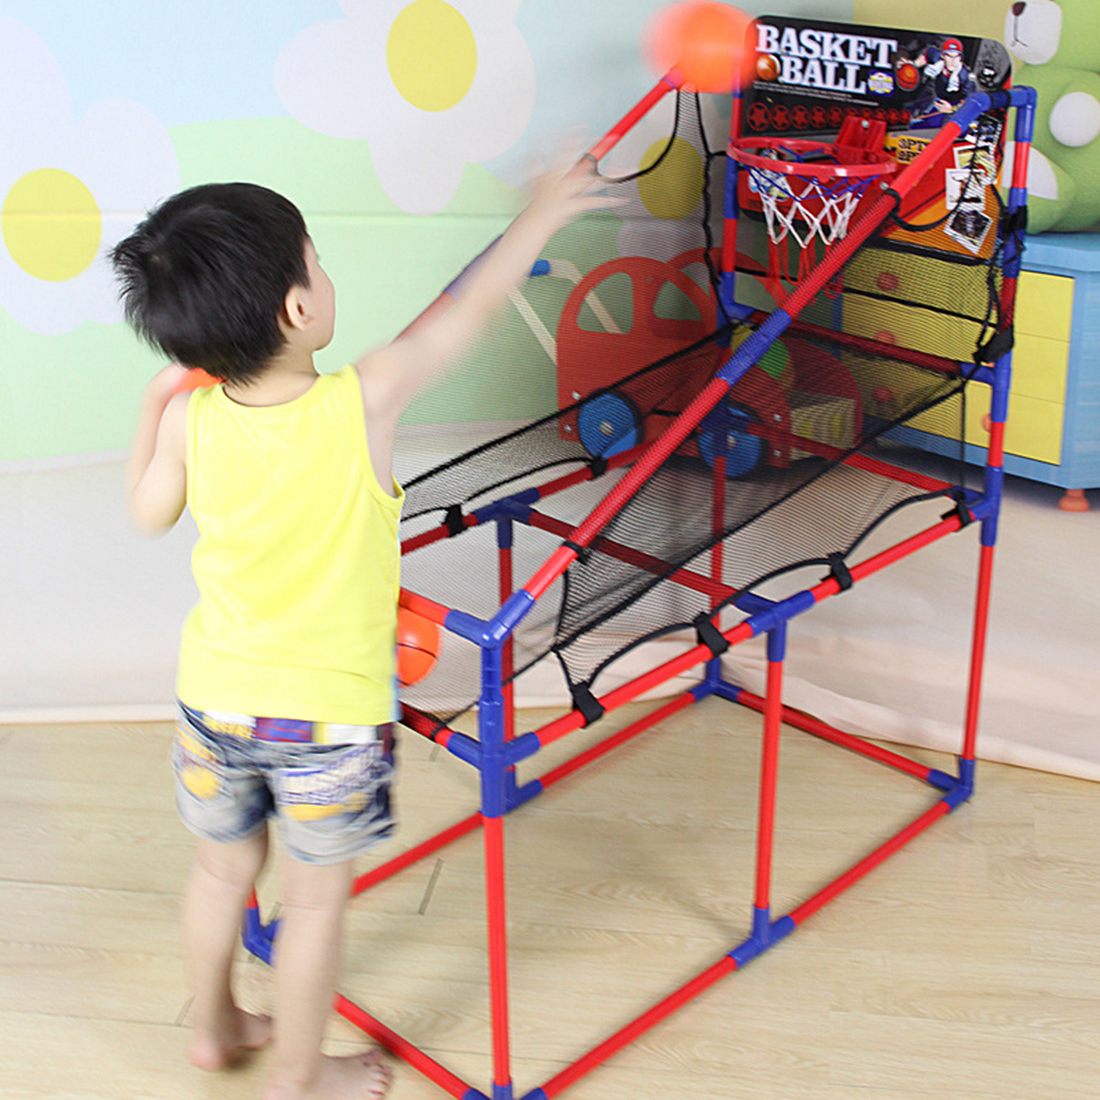 ФОТО 106-160cm Indoor Basketball Sport Game Basketball Machine Hoop Stand Height Adjustable with Inflator for Children Kids Gift